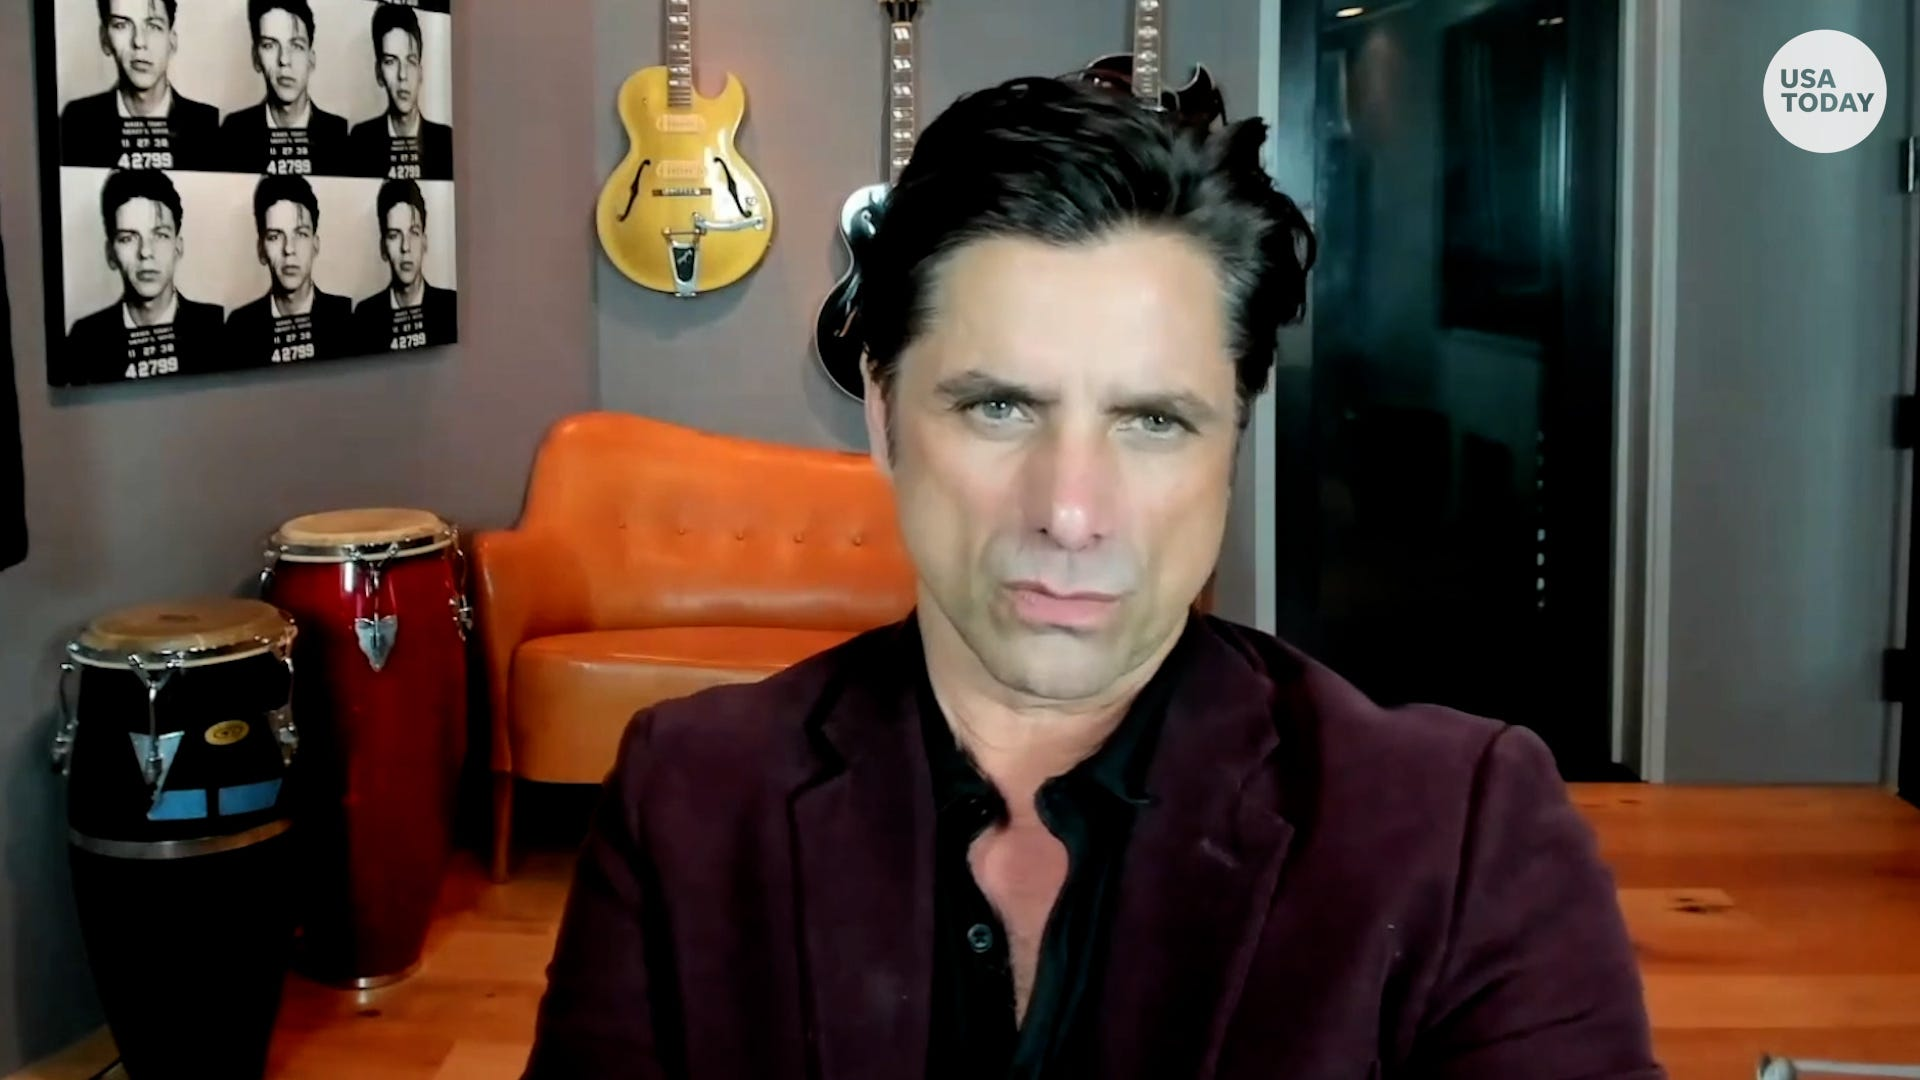 John Stamos looks back at 'Full House' and 'ER' roles, previews new Disney+ series